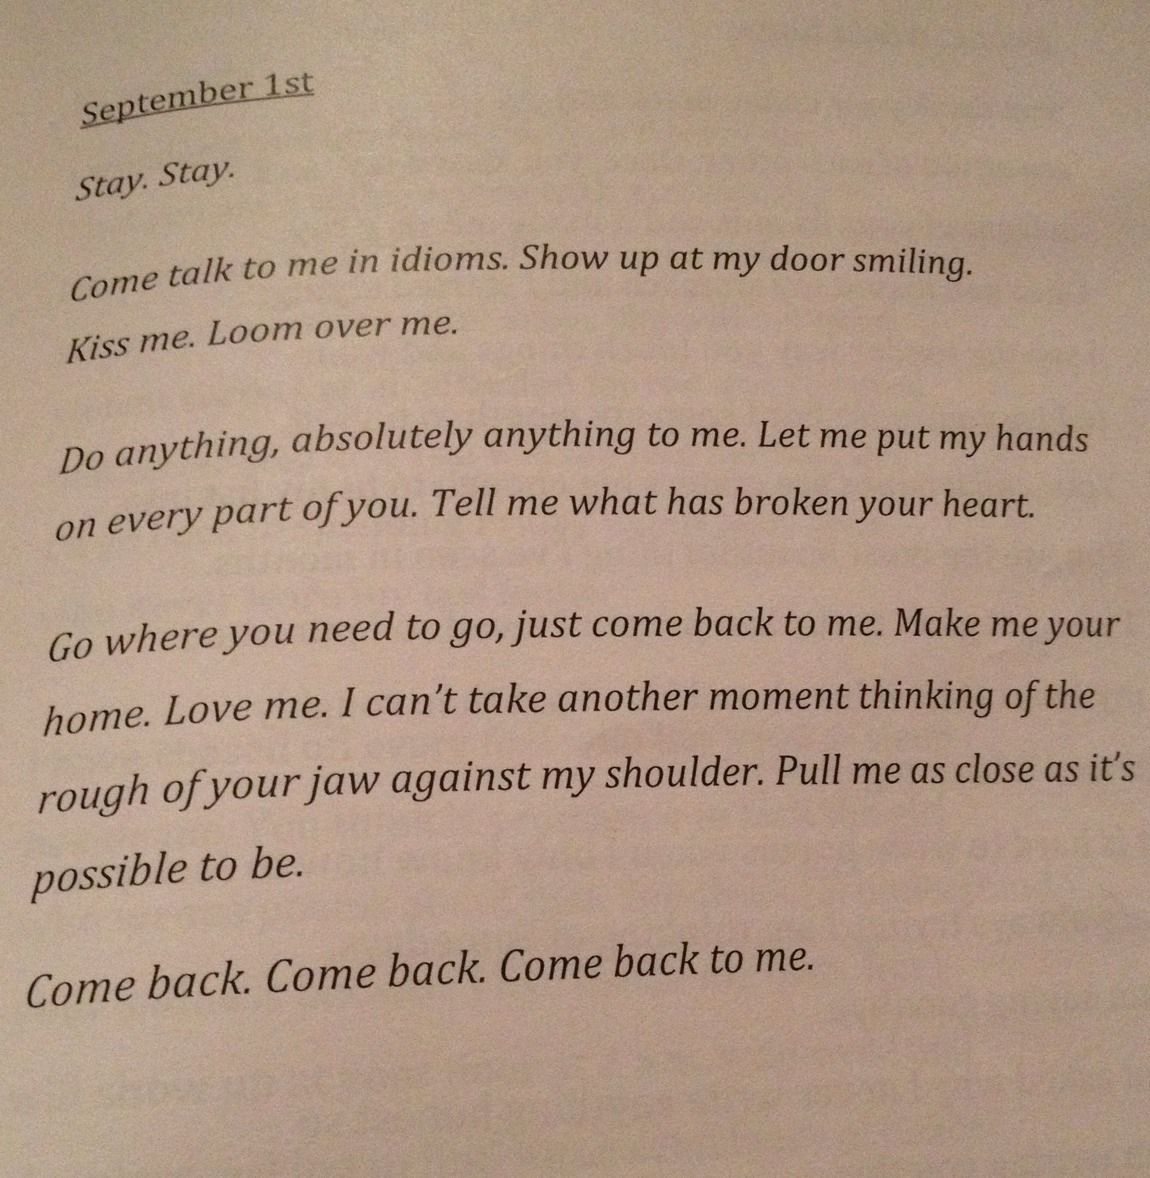 clementine von radics mouthful of forevers pdf